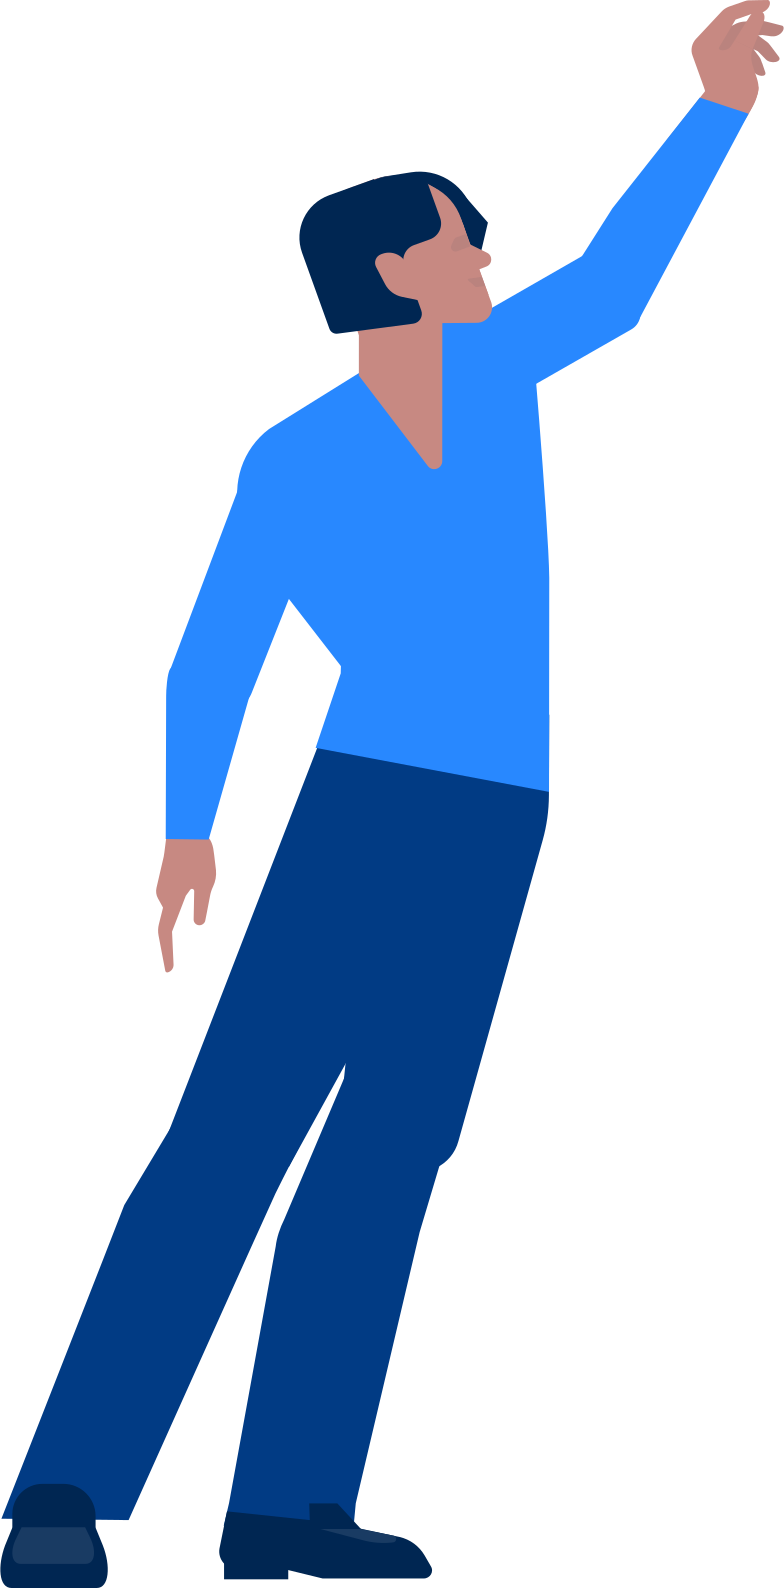 man with a raised hand Clipart illustration in PNG, SVG